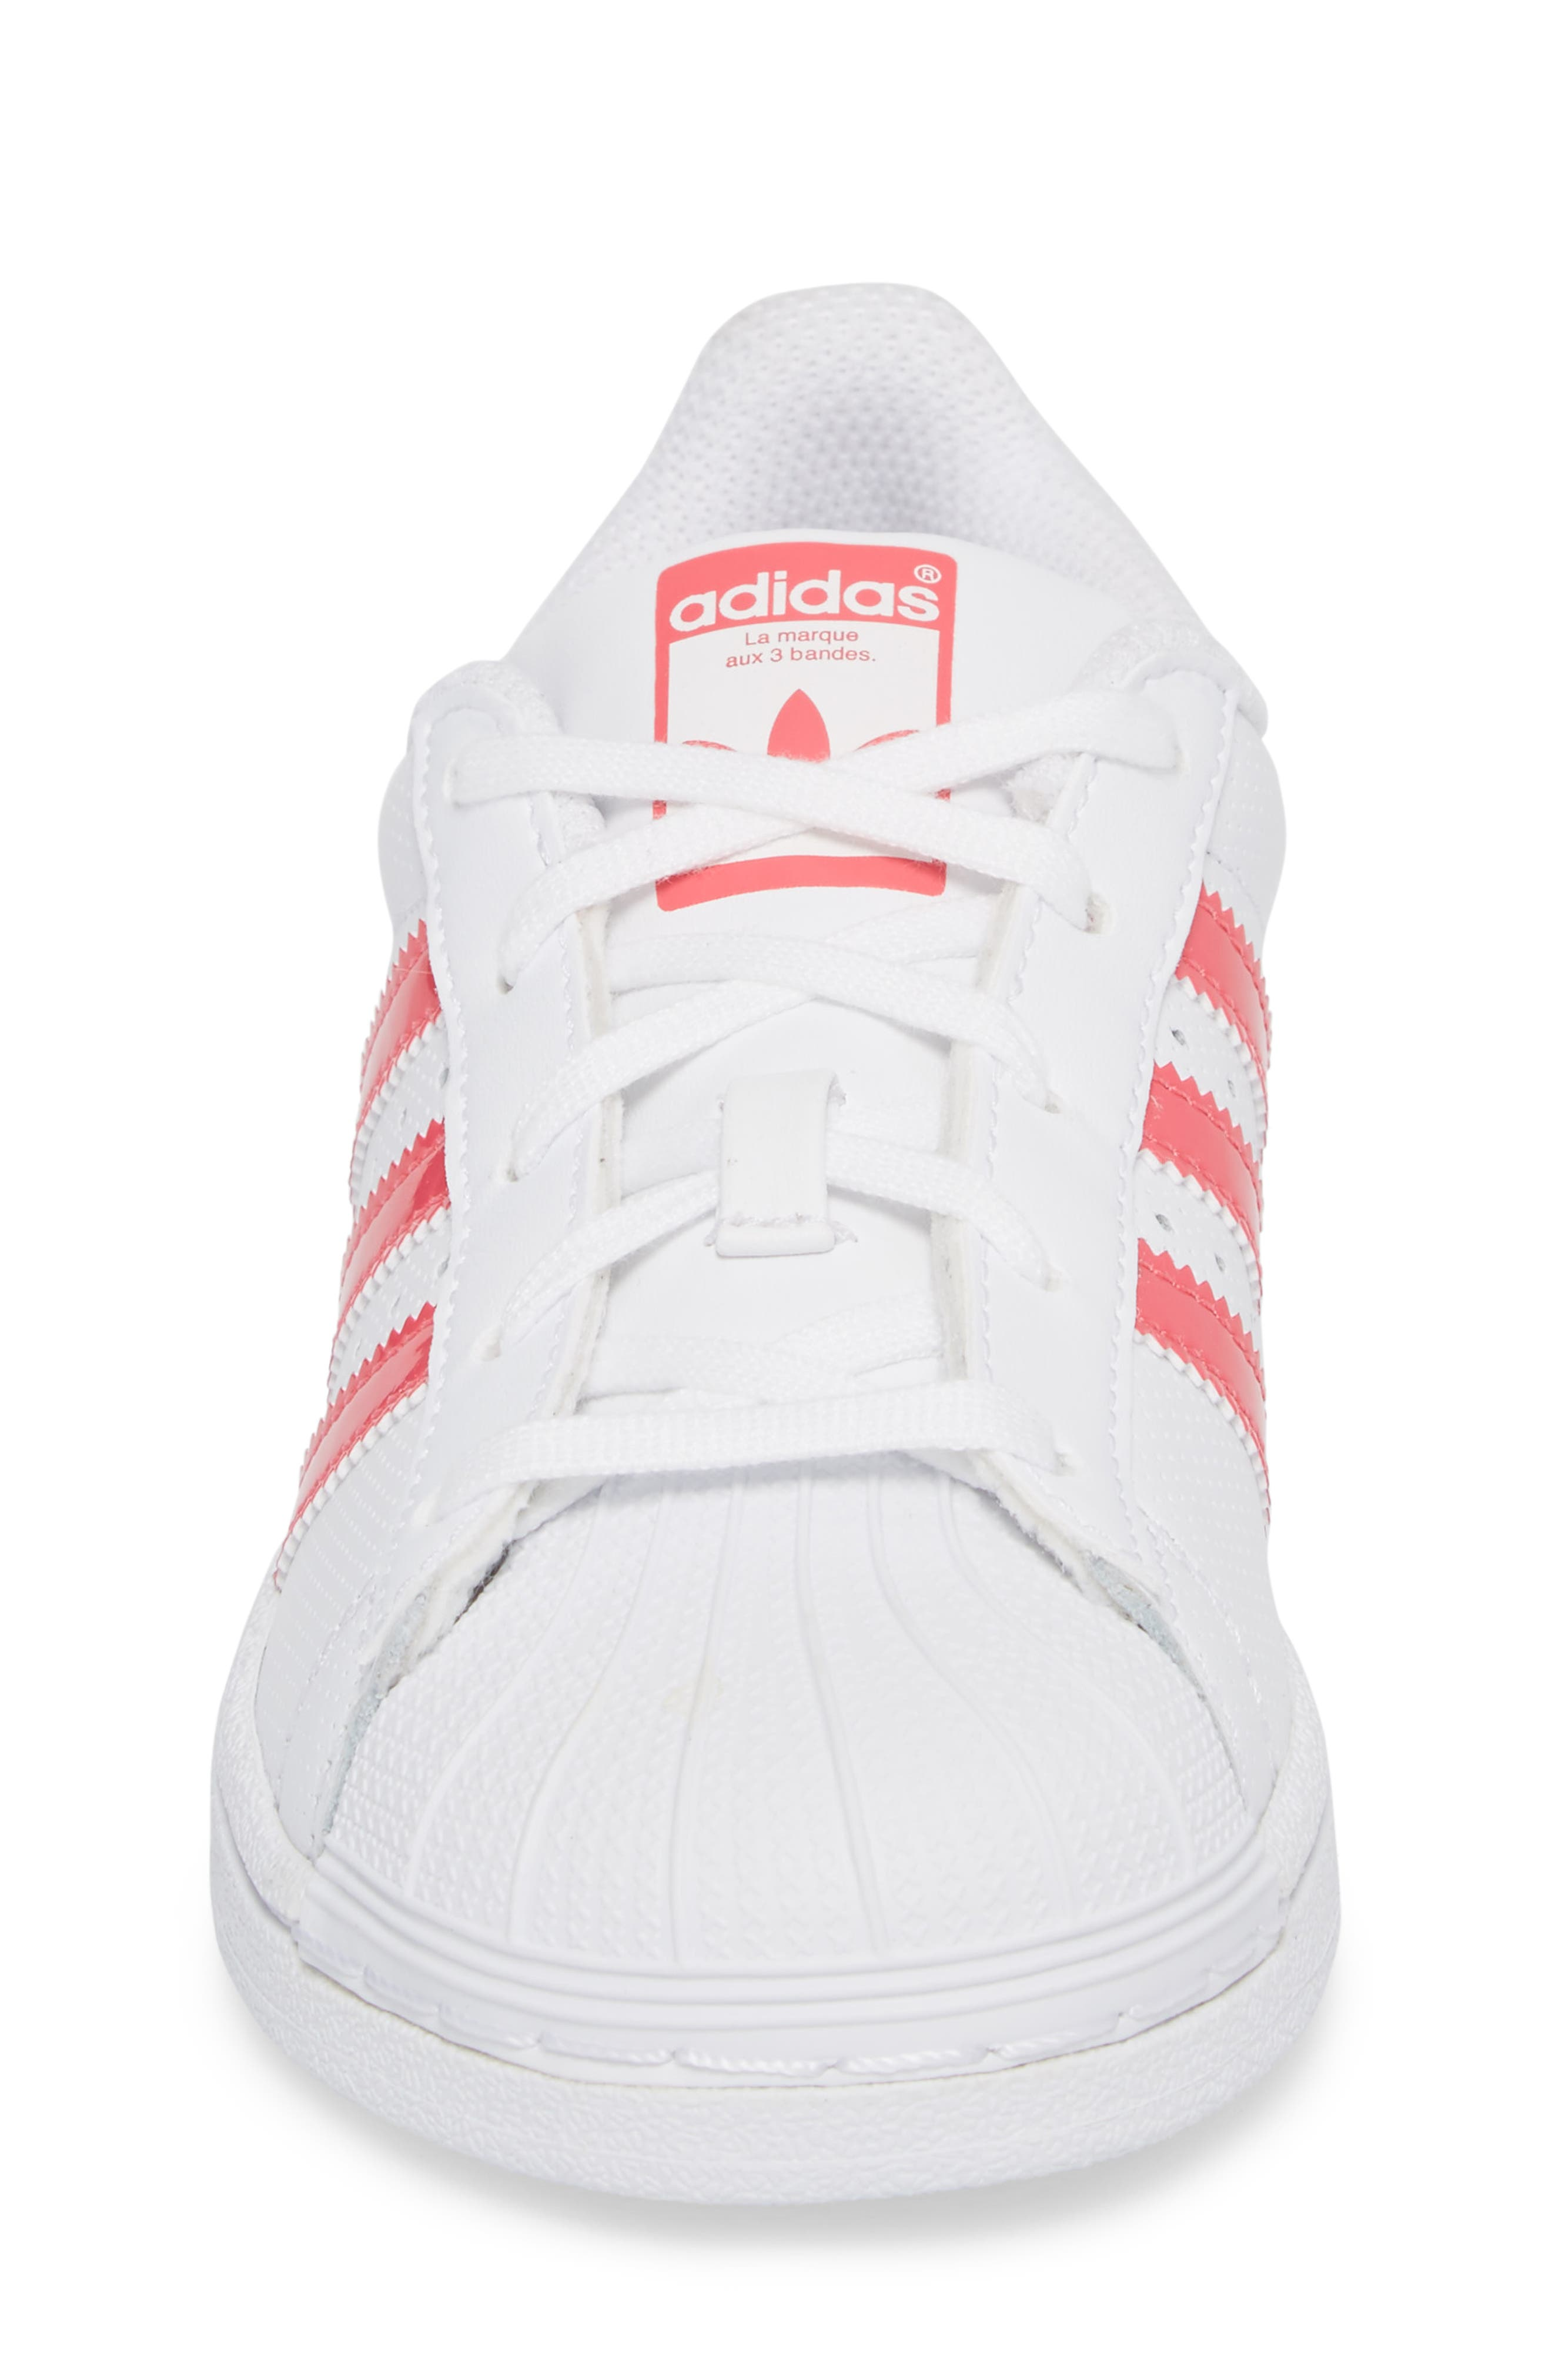 Superstar Perforated Low Top Sneaker,                             Alternate thumbnail 4, color,                             White / Real Pink / White